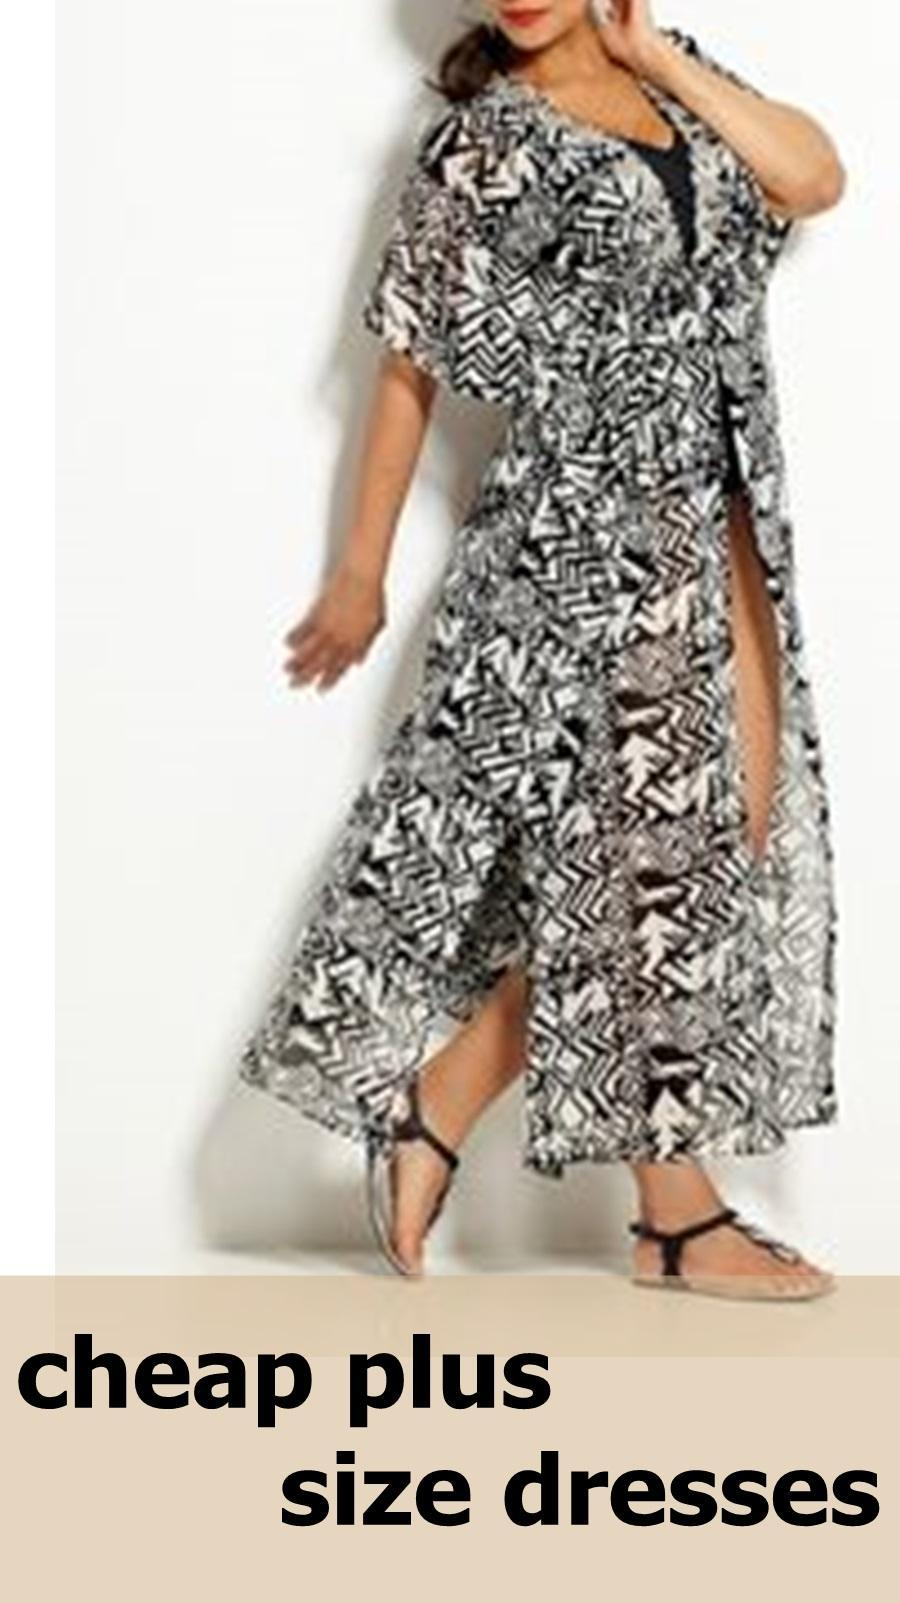 cute plus size dresses ideas 2018 😍 for Android - APK Download